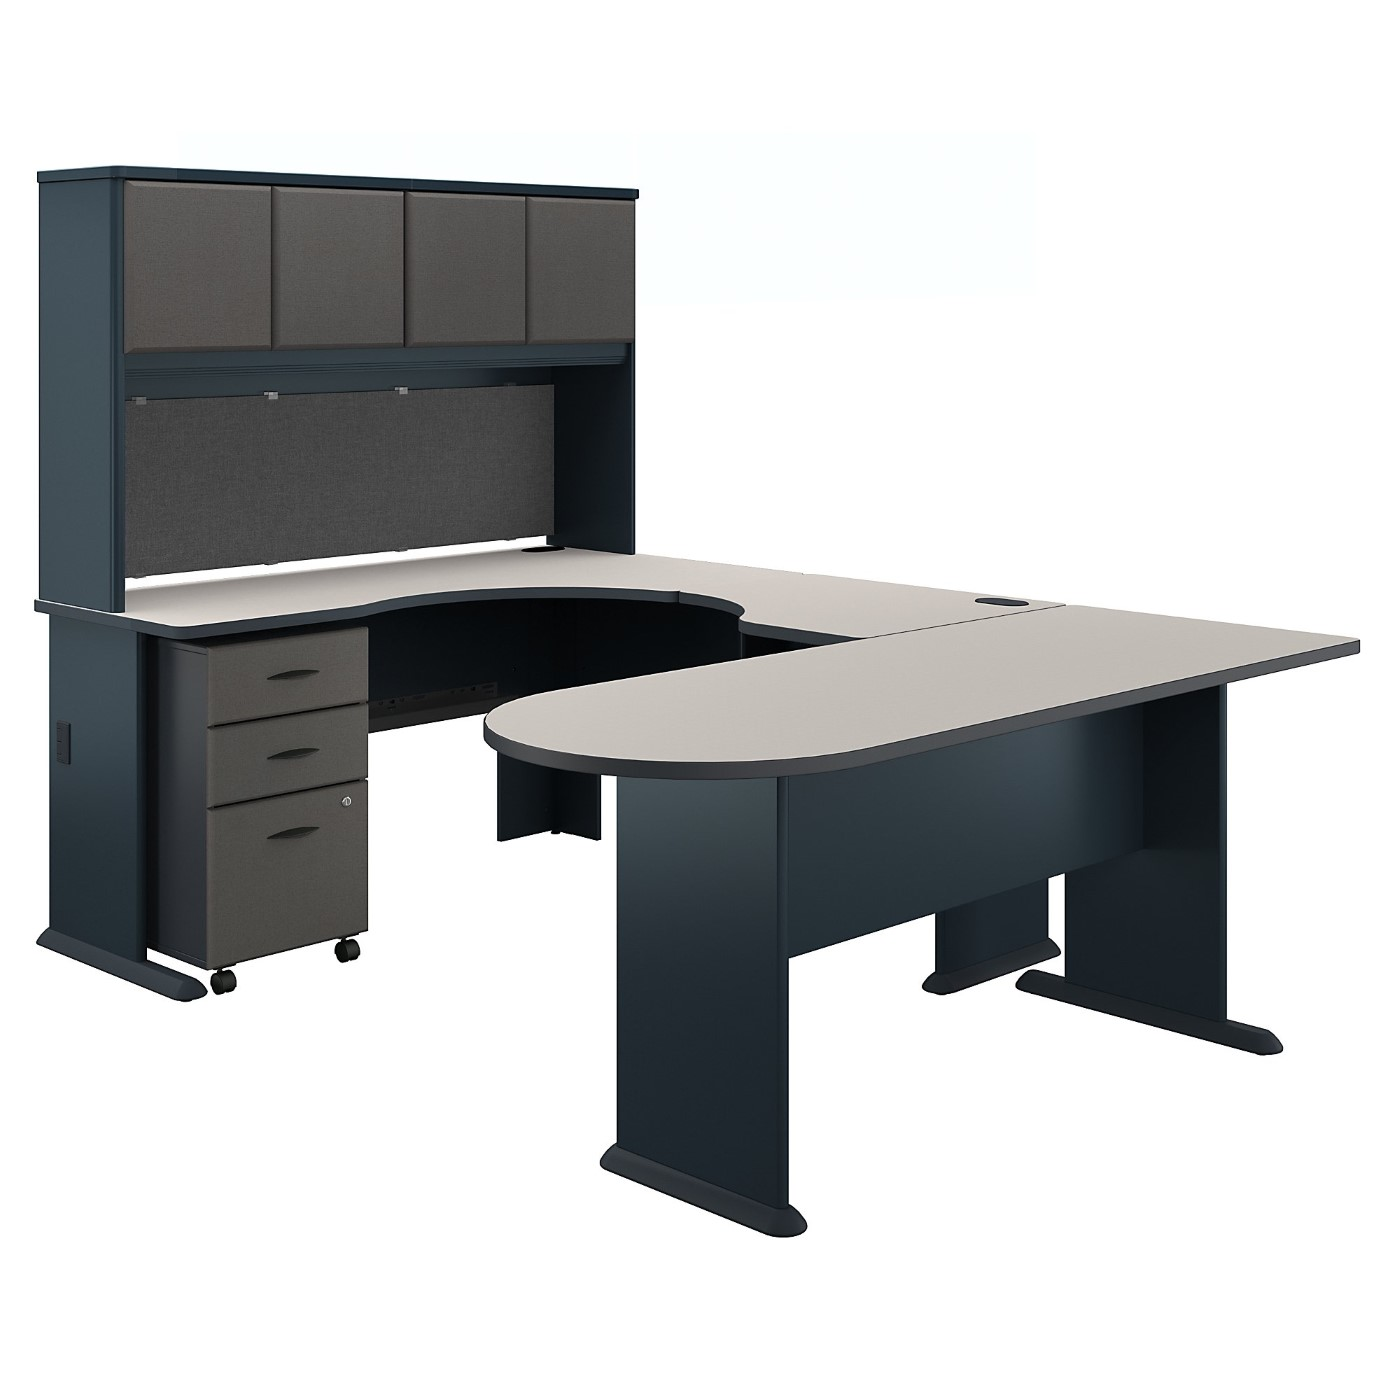 BUSH BUSINESS FURNITURE SERIES A U SHAPED CORNER DESK WITH HUTCH AND MOBILE FILE CABINET. FREE SHIPPING SALE DEDUCT 10% MORE ENTER '10percent' IN COUPON CODE BOX WHILE CHECKING OUT.